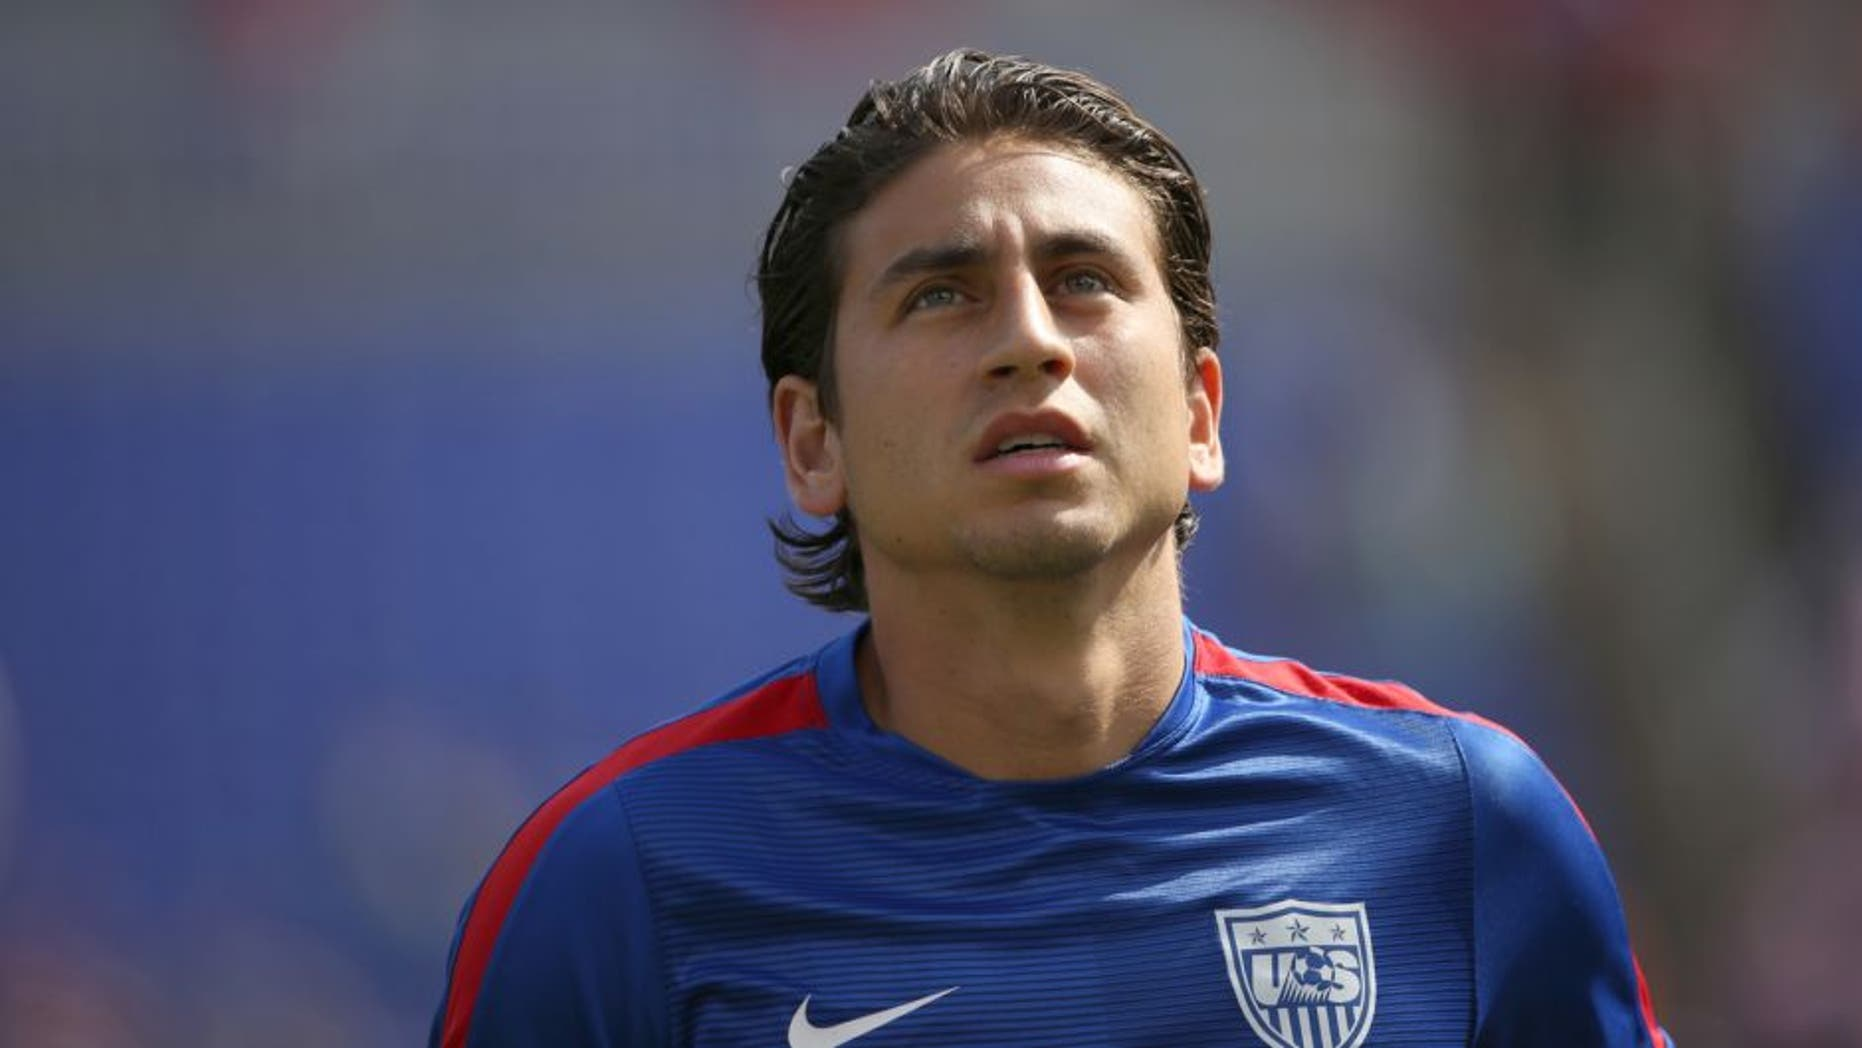 BALTIMORE, MD - JULY 18: Alejandro Bedoya of United States of America during the Gold Cup Quarter Final between USA and Cuba at M&T Bank Stadium on July 18, 2015 in Baltimore, Maryland. (Photo by Matthew Ashton - AMA/Getty Images)